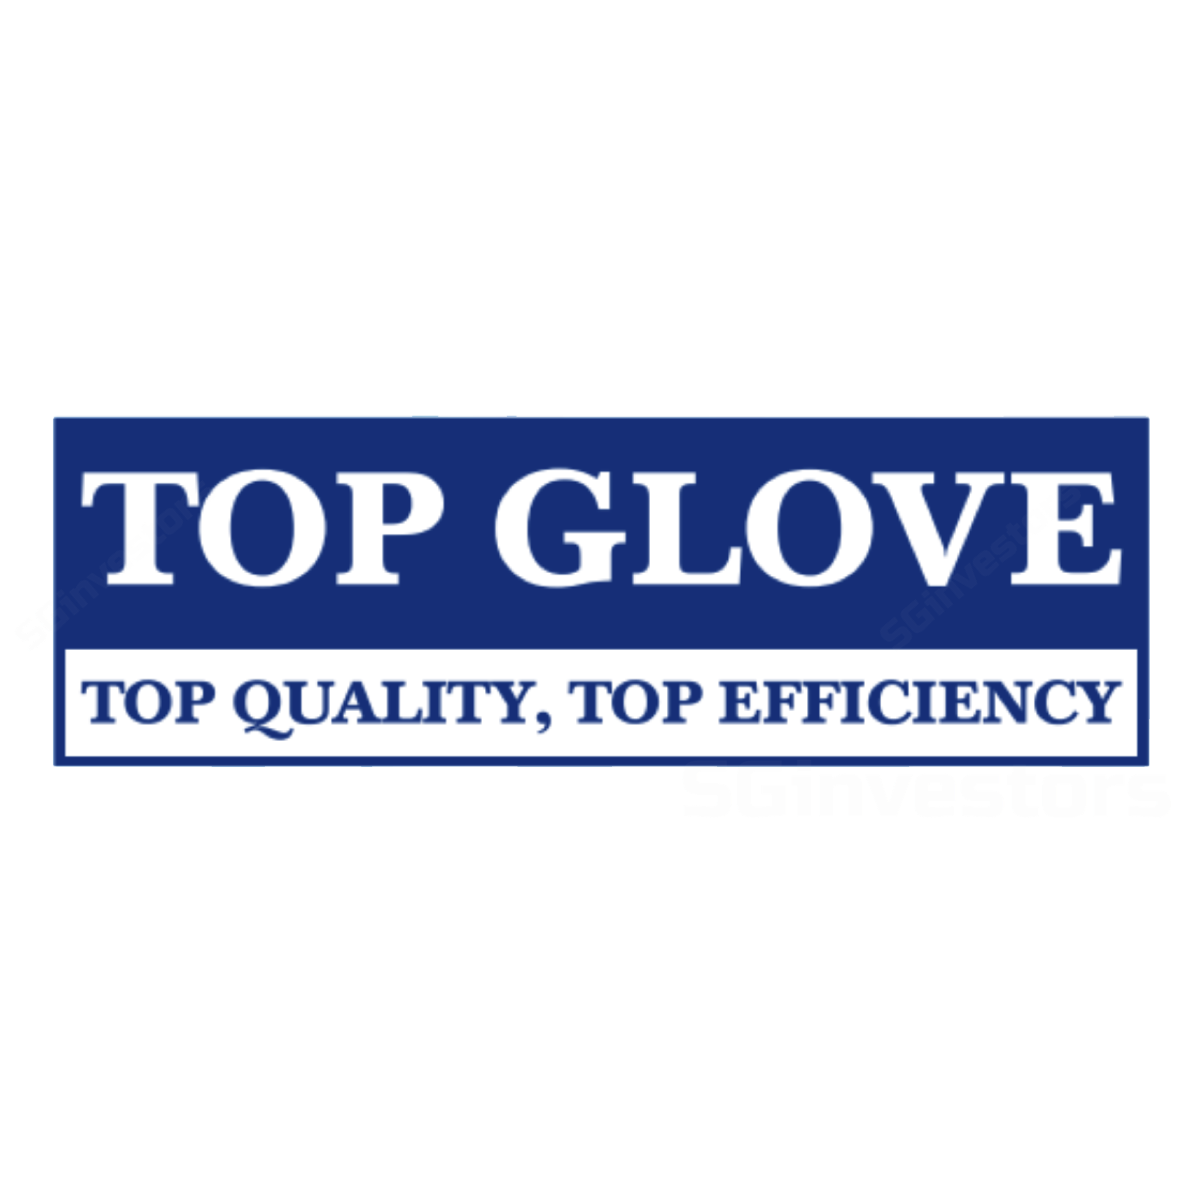 Top Glove Corporation - CIMB Research 2017-12-19: Still The Top Gun